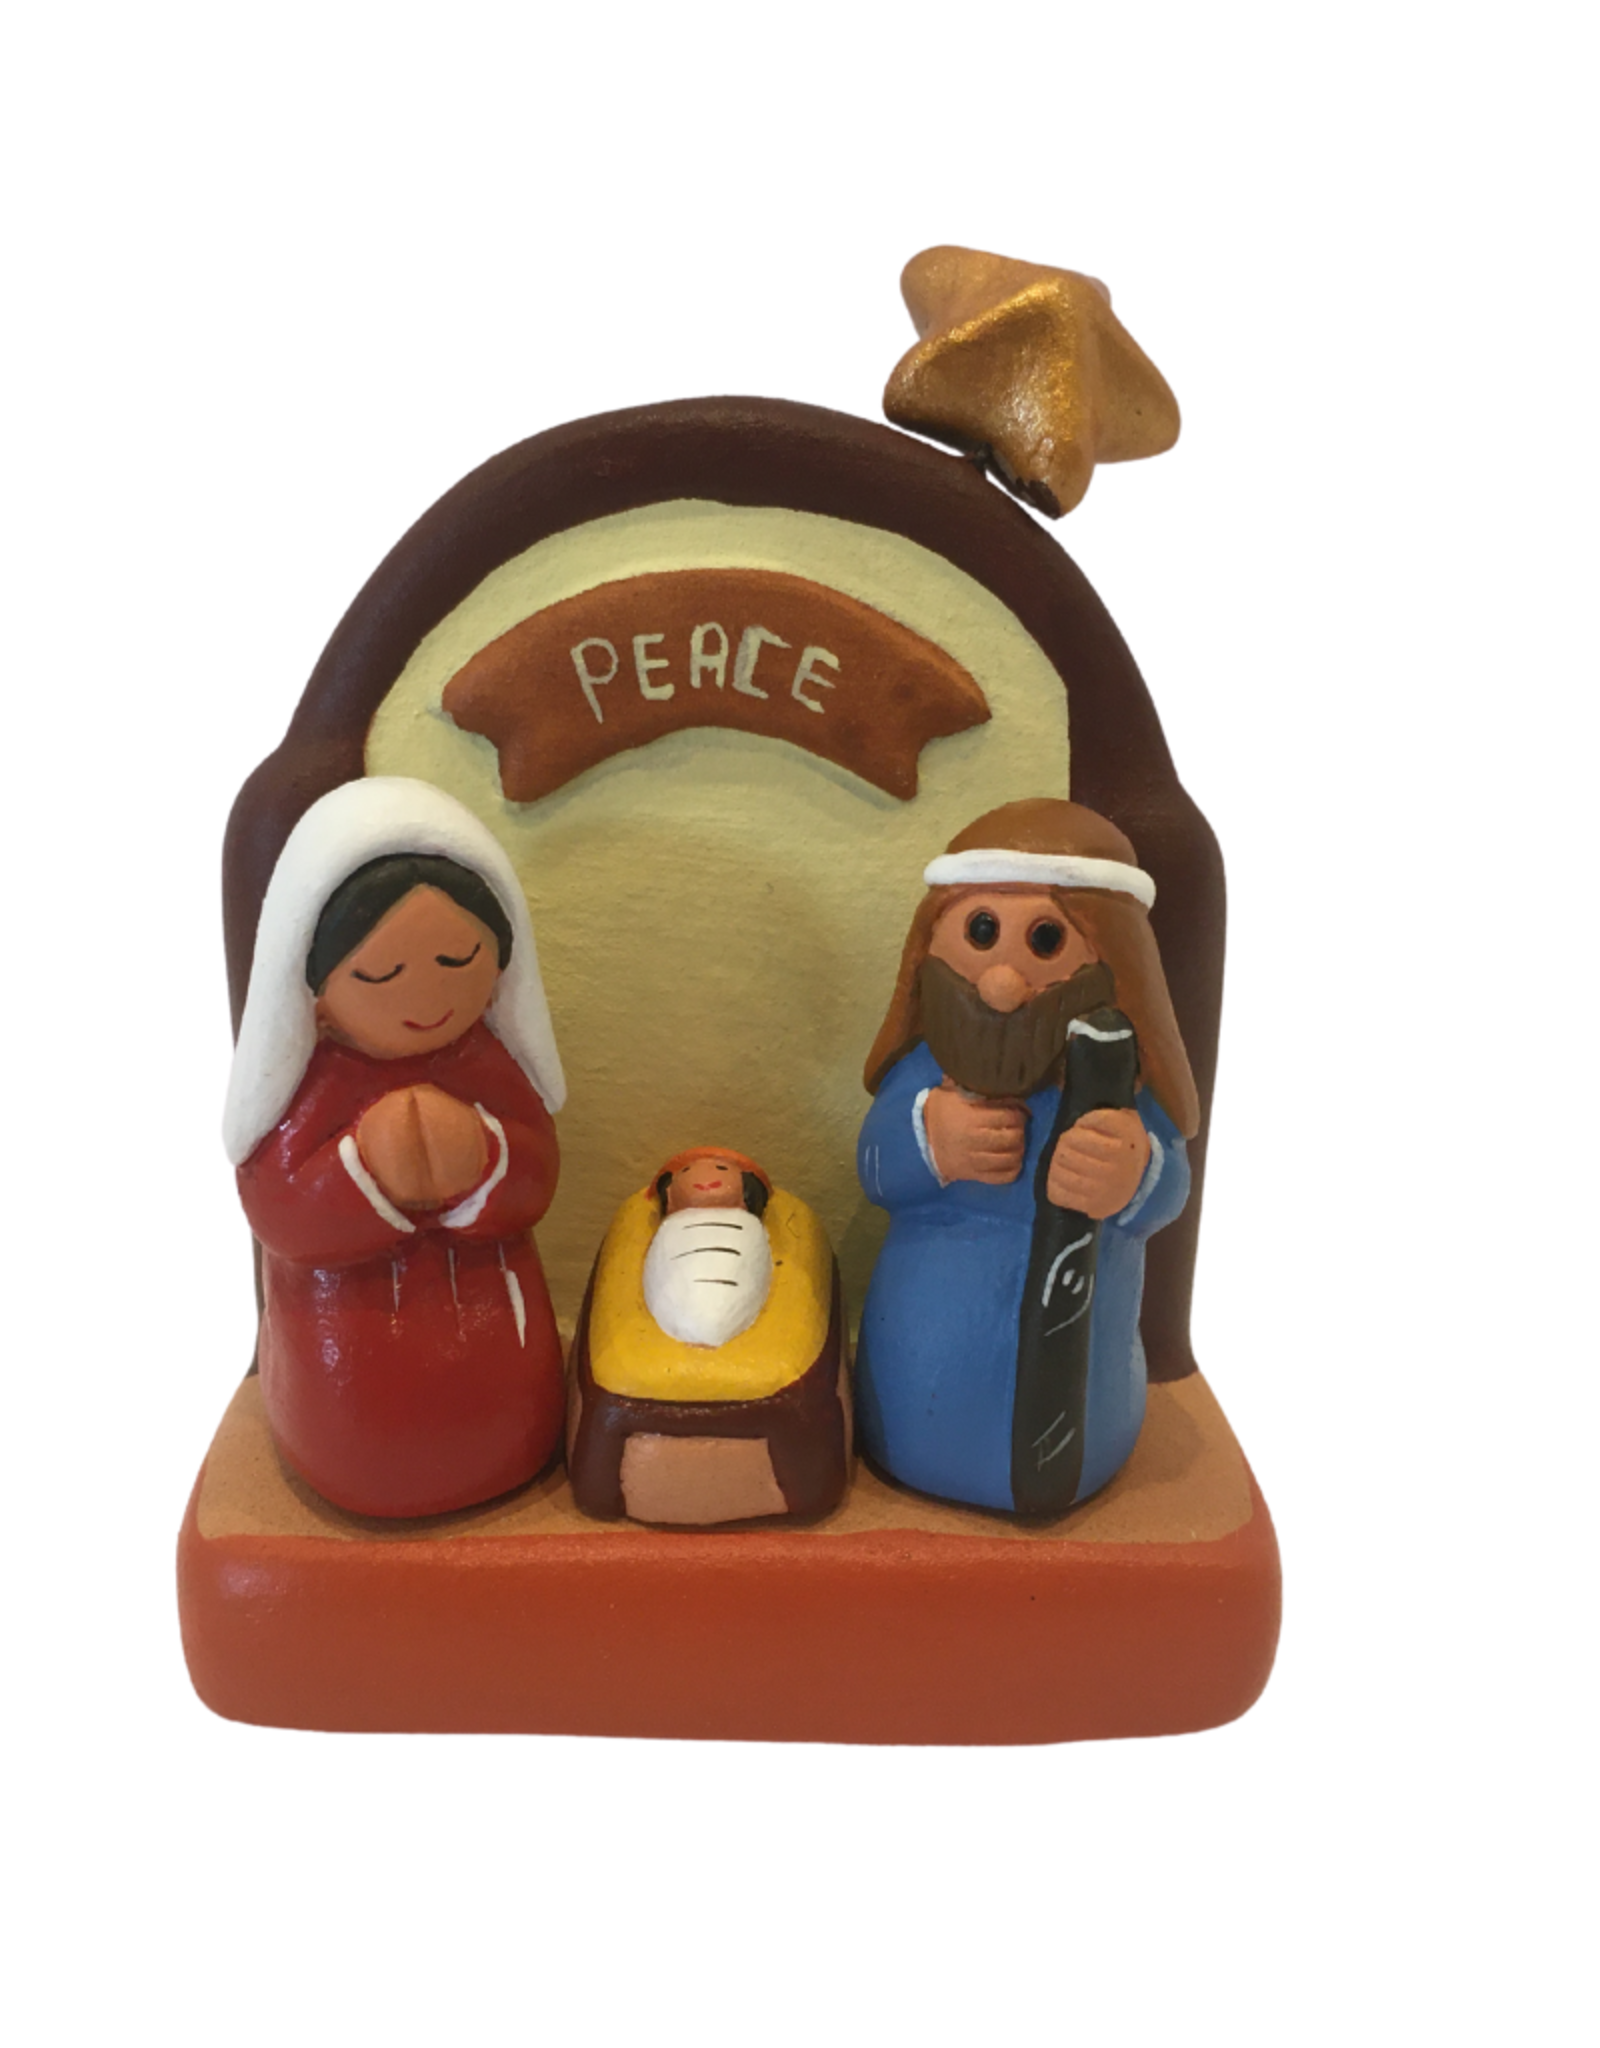 Ten Thousand Villages Small Ceramic Nativity